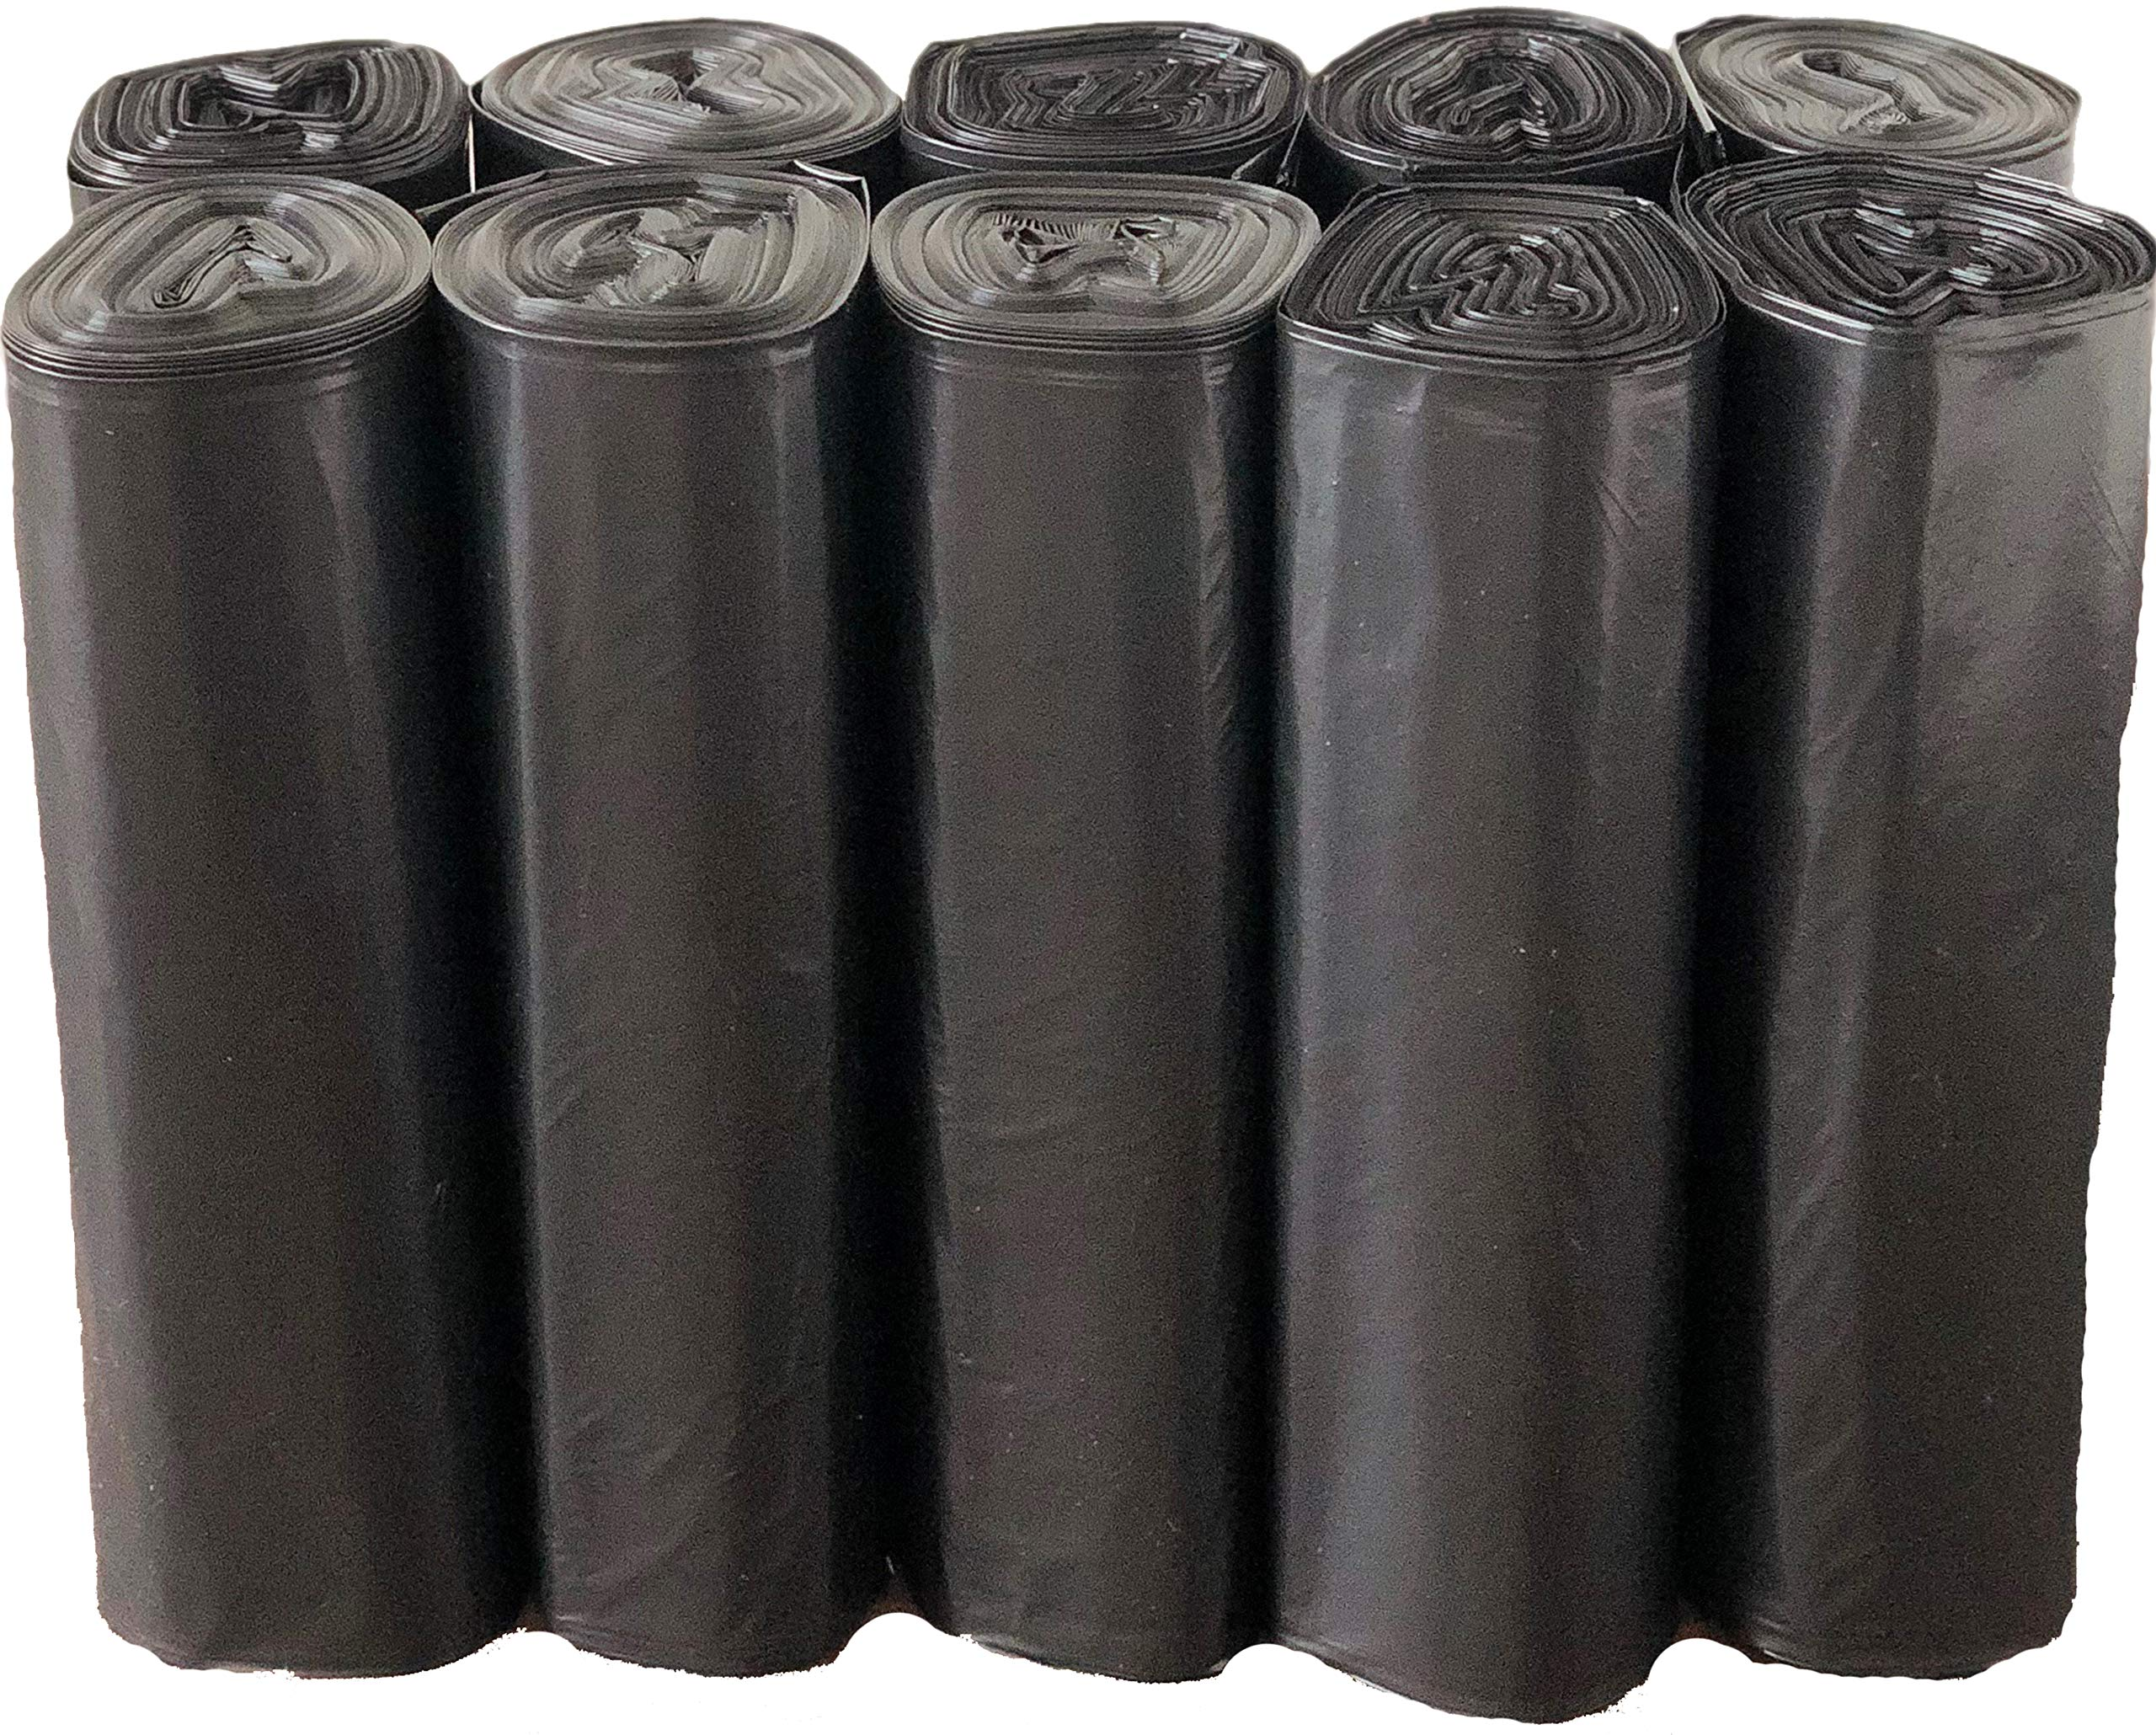 Reli. Recyclable Eco-Friendly Trash Bags, 33 Gallon (150 Count) - Made from Recycled Content (SCS Certified) - Go Green Canliners - Environment-Friendly Garbage Bags (30 Gallon - 35 Gallon) (Black) by Reli. (Image #3)